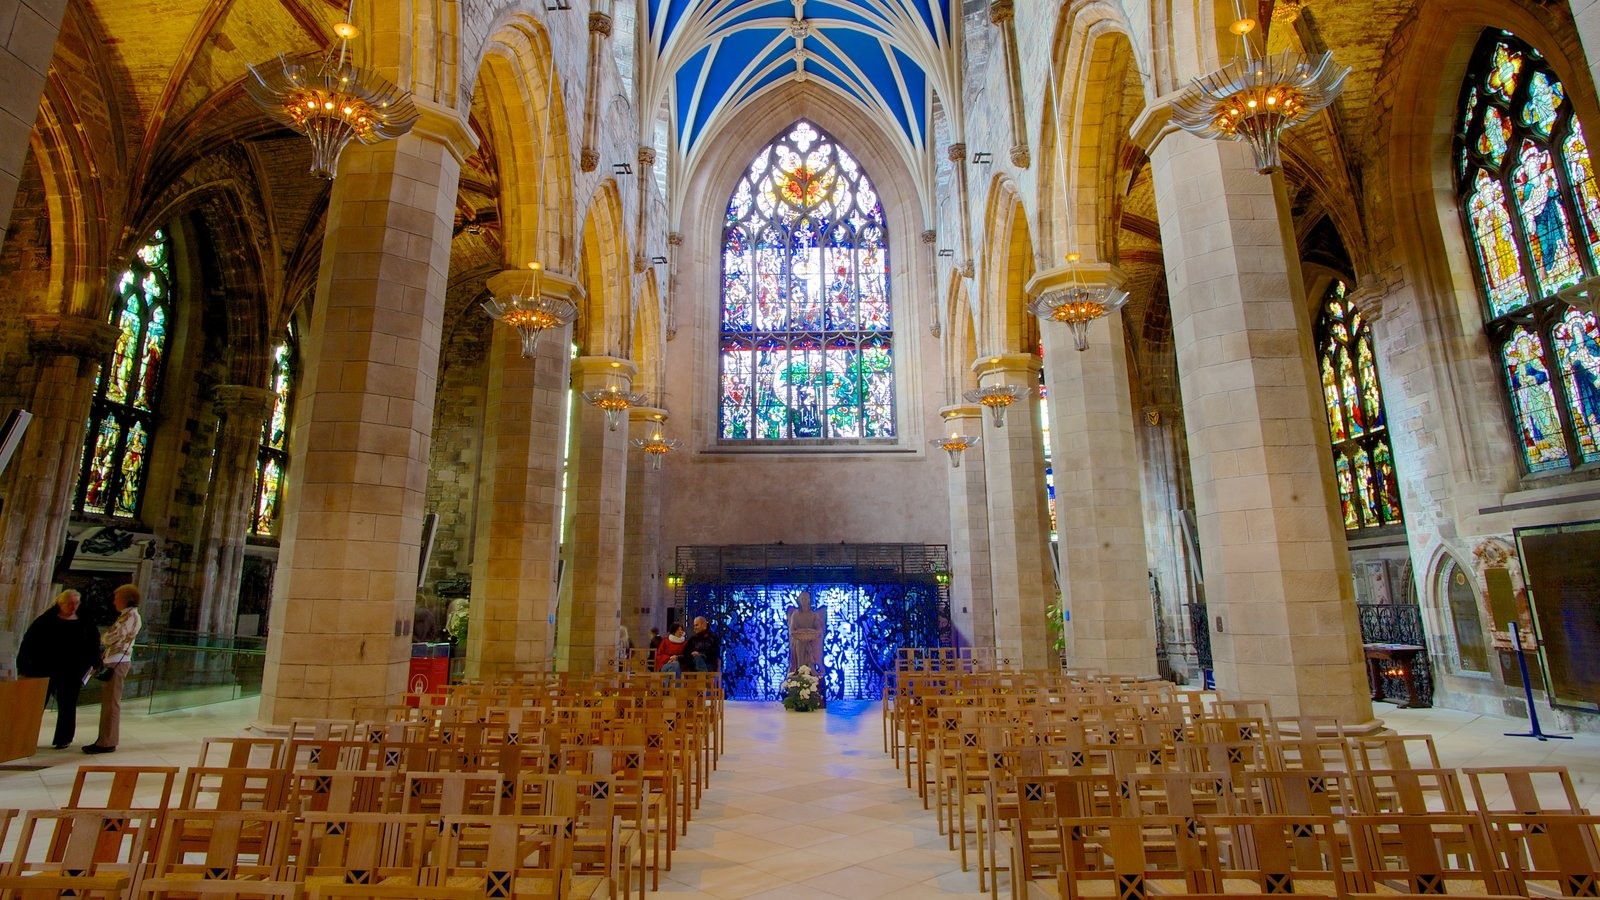 St. Giles\' Cathedral featuring religious aspects, a church or cathedral and interior views